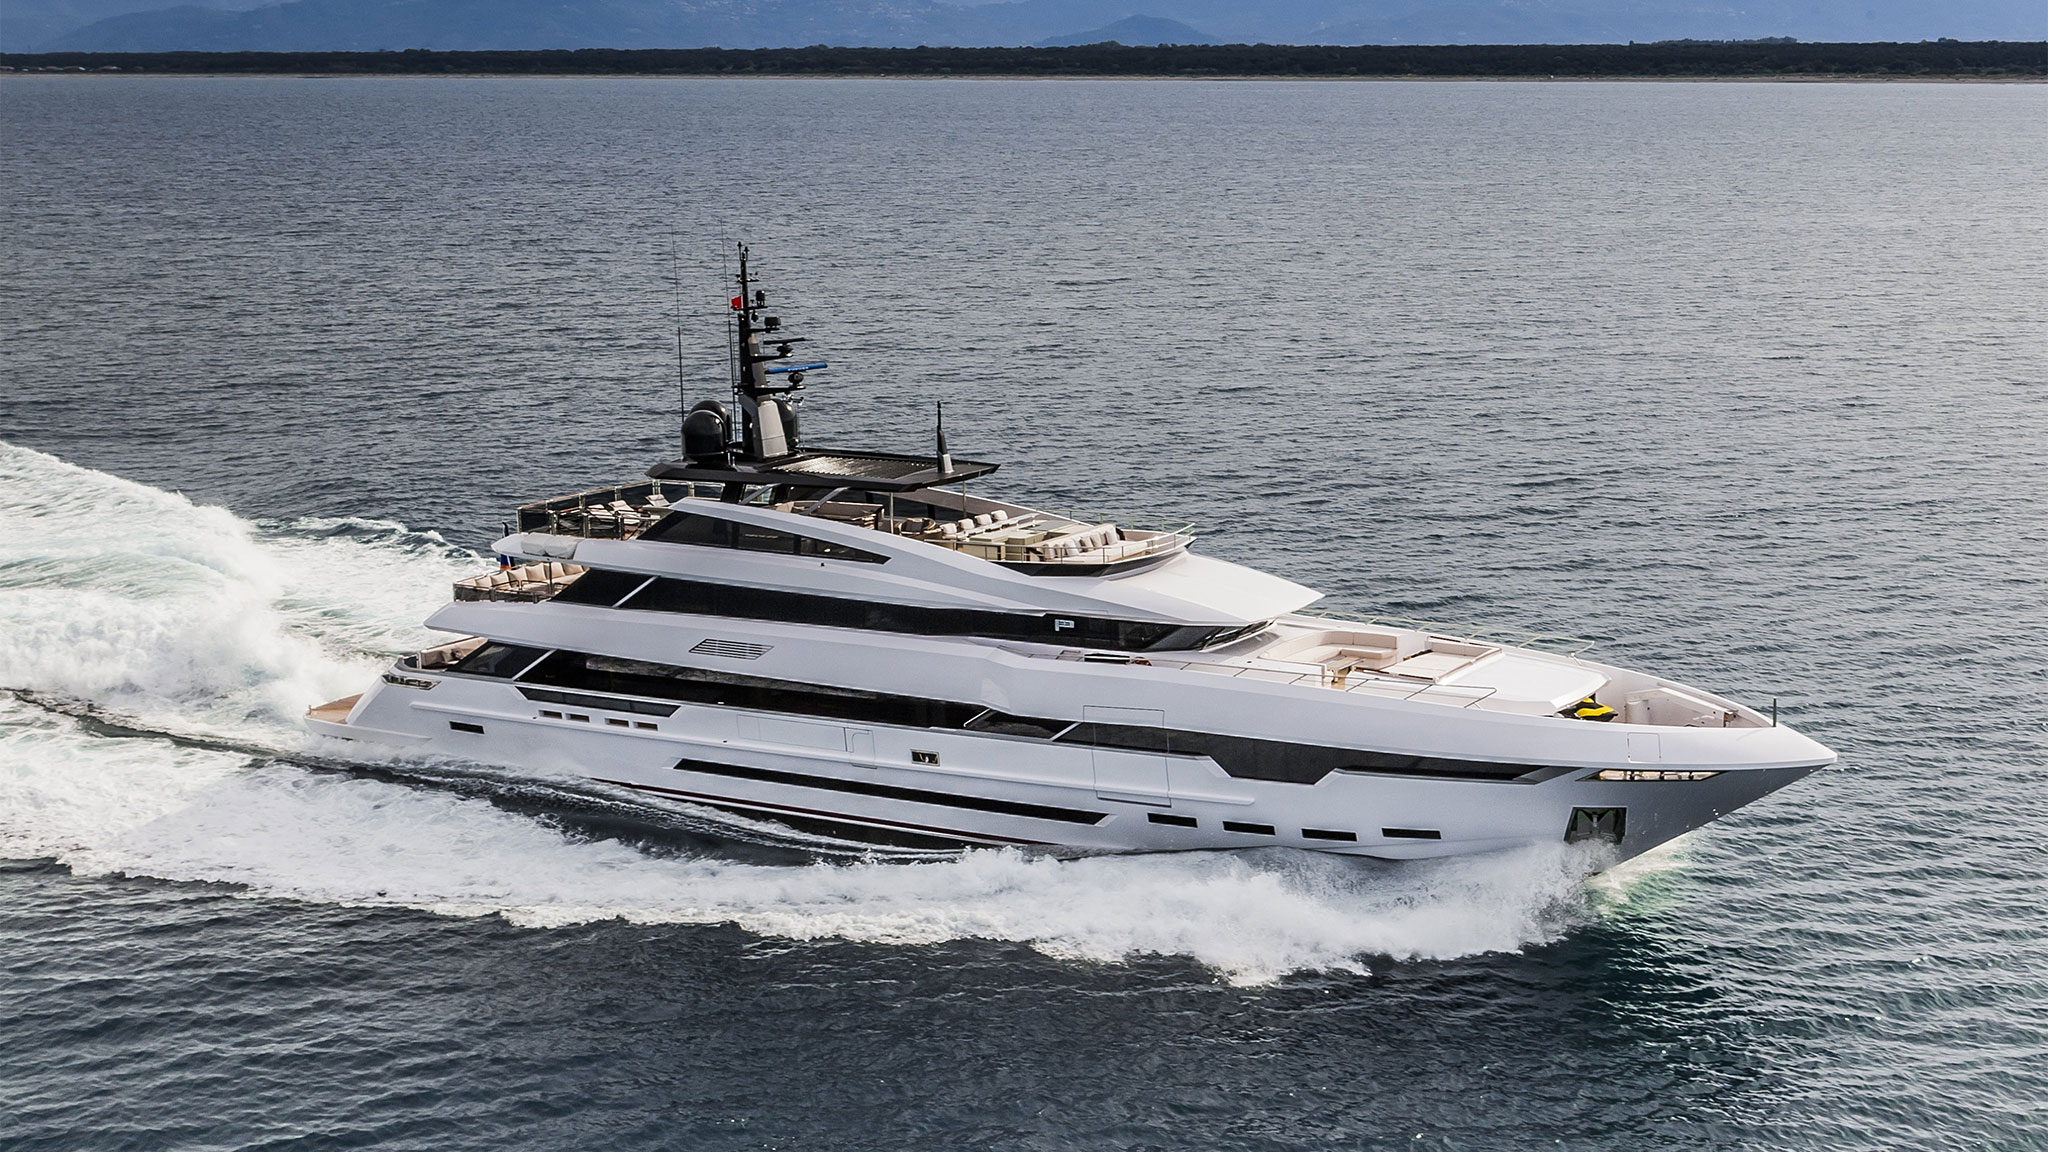 Super-size my superyacht: the quest for bigger boats and